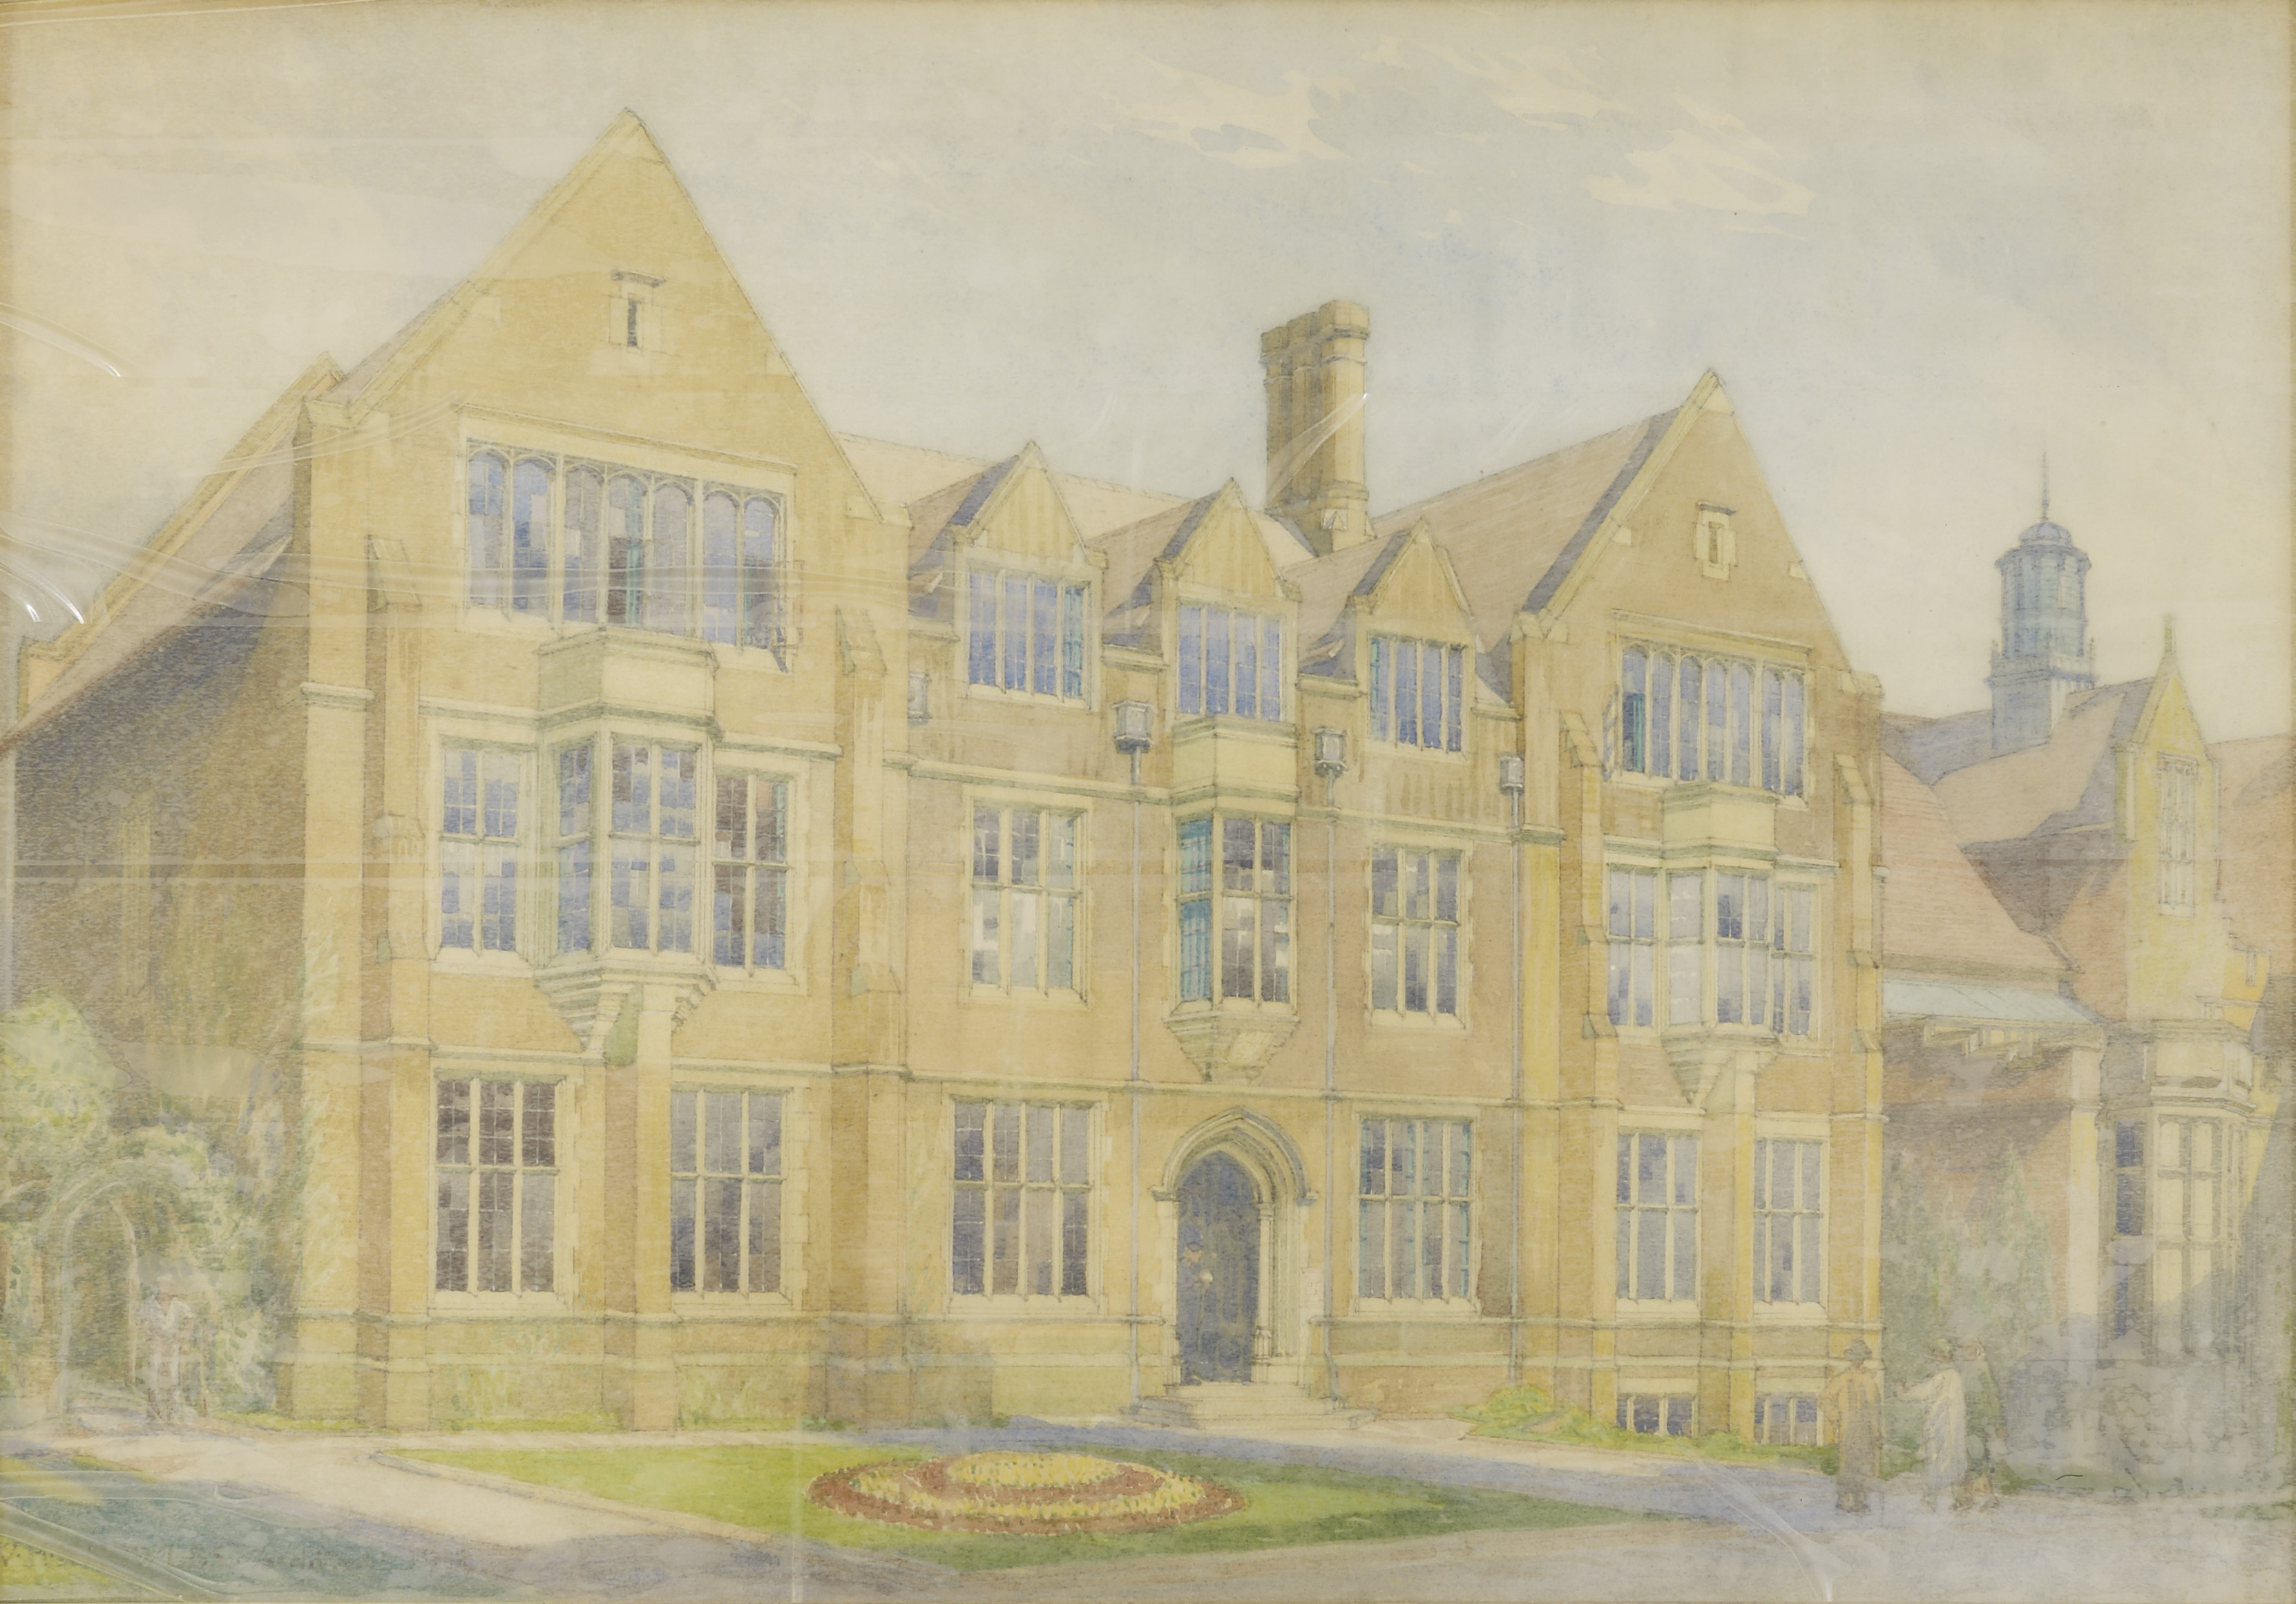 Watercolour of the new Armstrong Building, Armstrong College presented to Clement Stephenson on the occasion of the foundation stone ceremony 5th April, 1915.